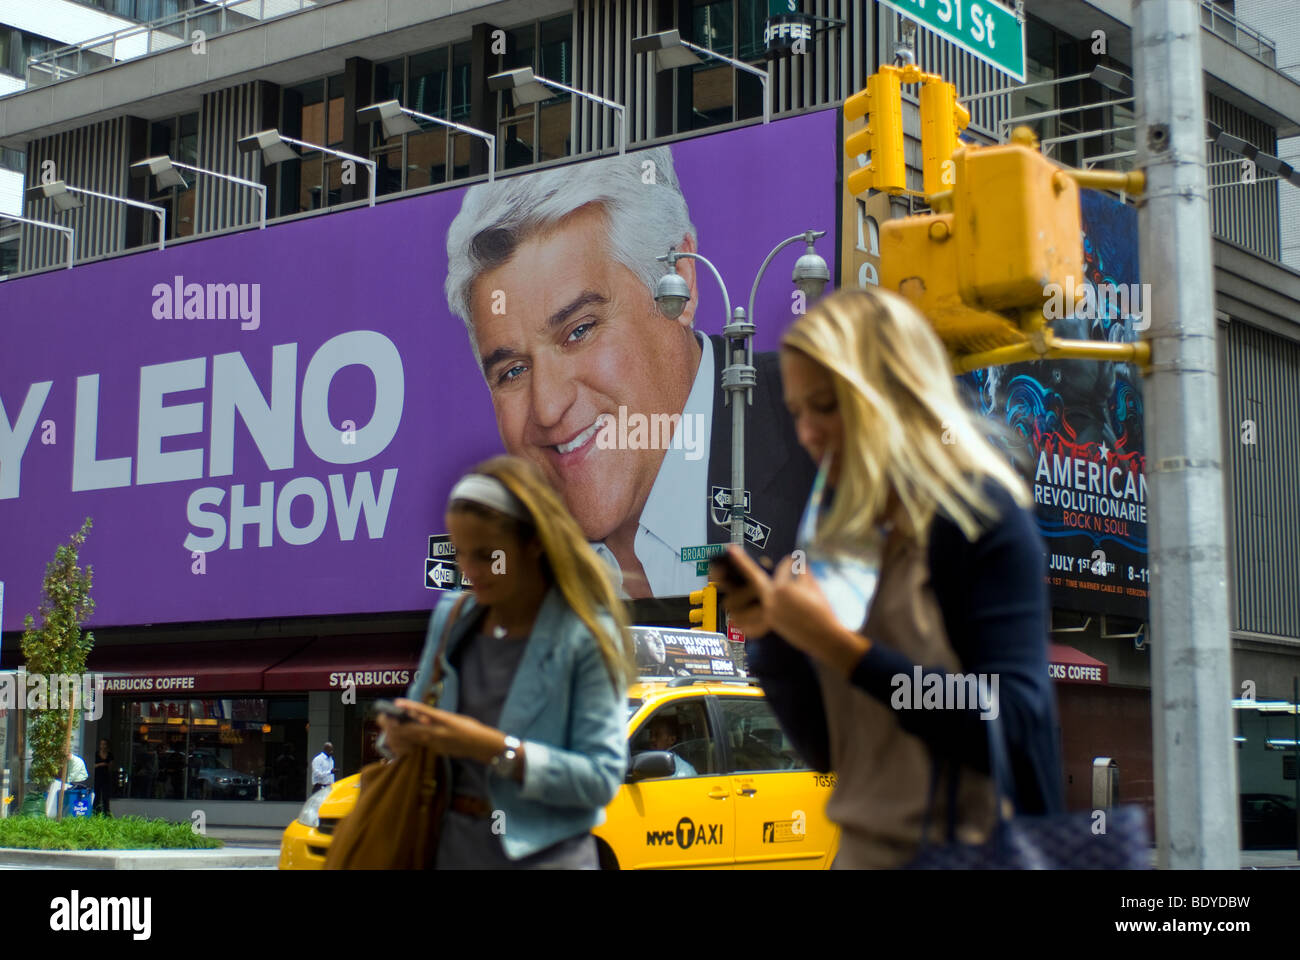 Advertising for the NBC television program, The Jay Leno Show on a billboard in Times Square in New York - Stock Image